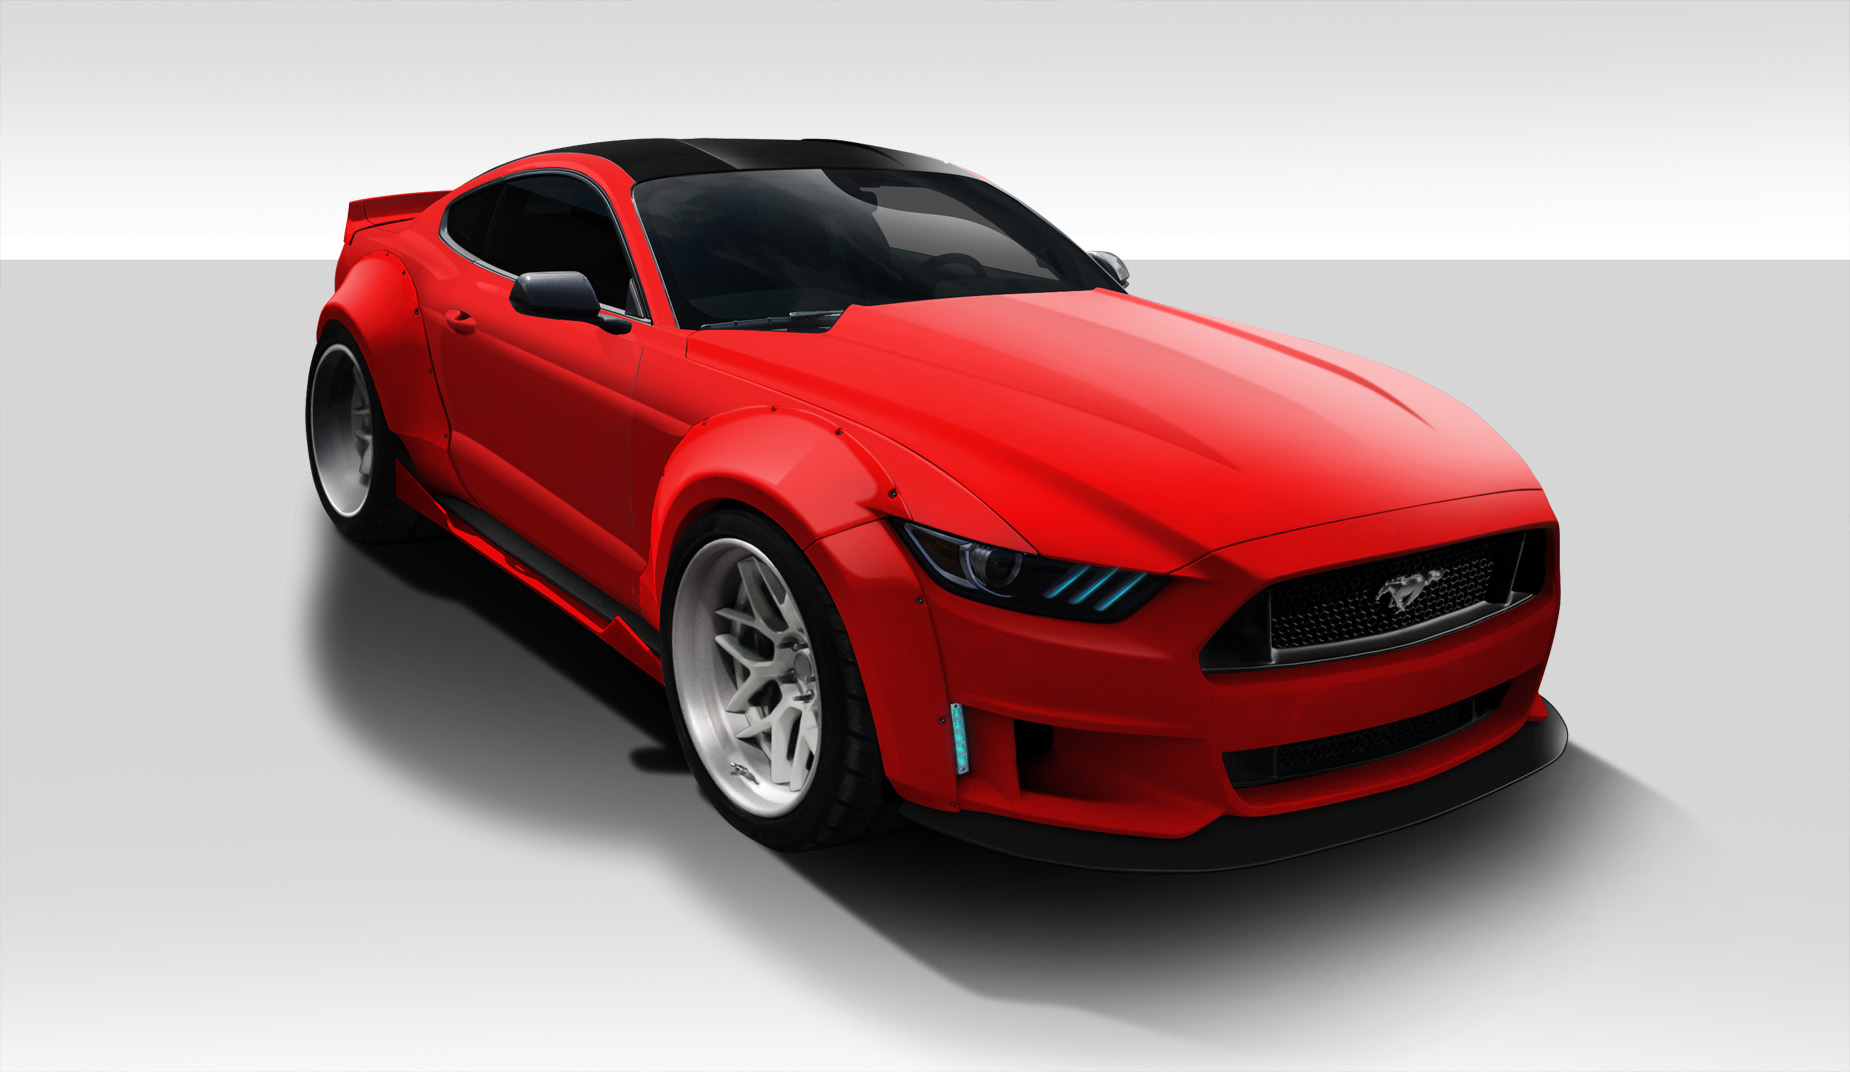 new duraflex kit 15 16 ford mustang grid wide body kit available soon forums at modded mustangs. Black Bedroom Furniture Sets. Home Design Ideas